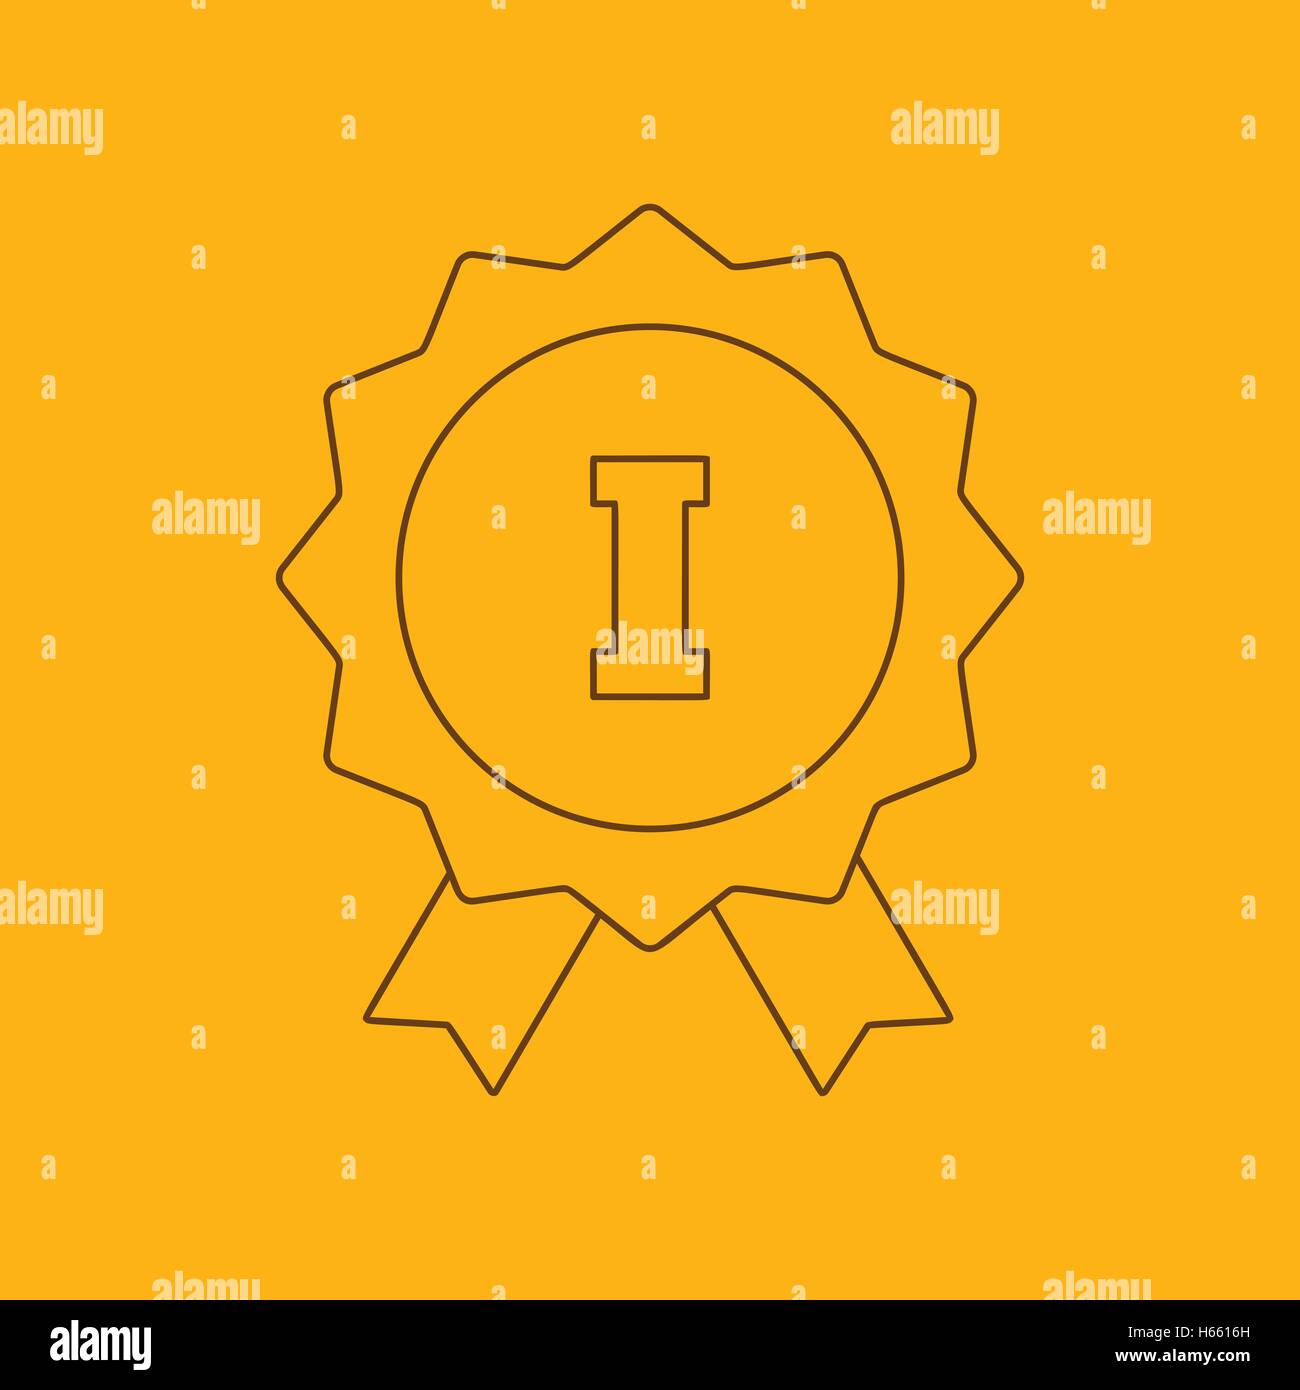 1st place ribbon line icon - Stock Image